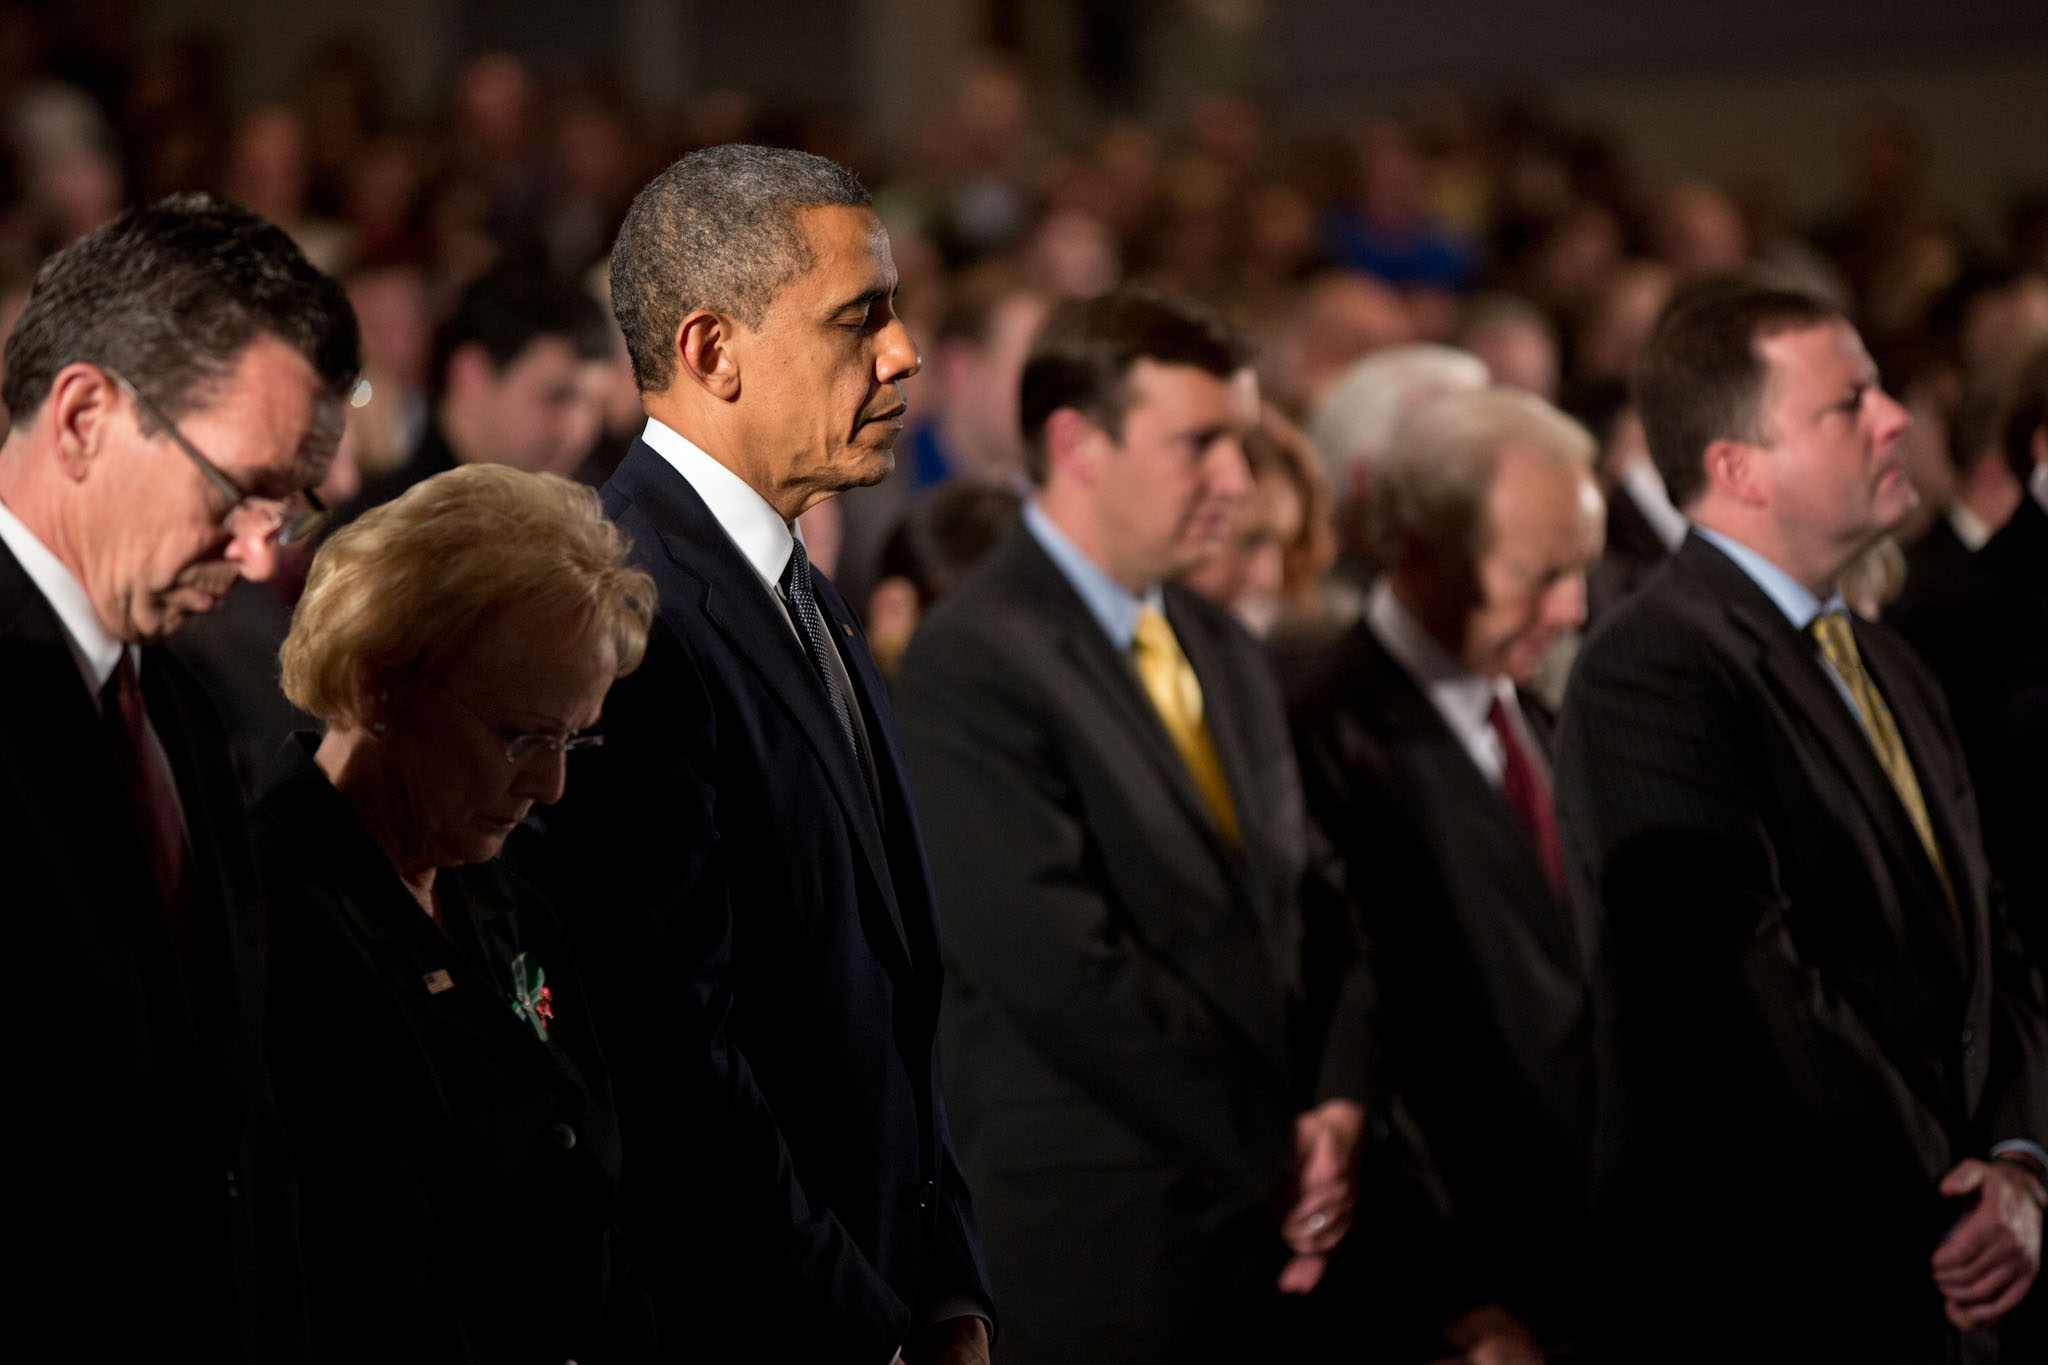 President Barack Obama attends the Sandy Hook interfaith vigil (December 16, 2012)